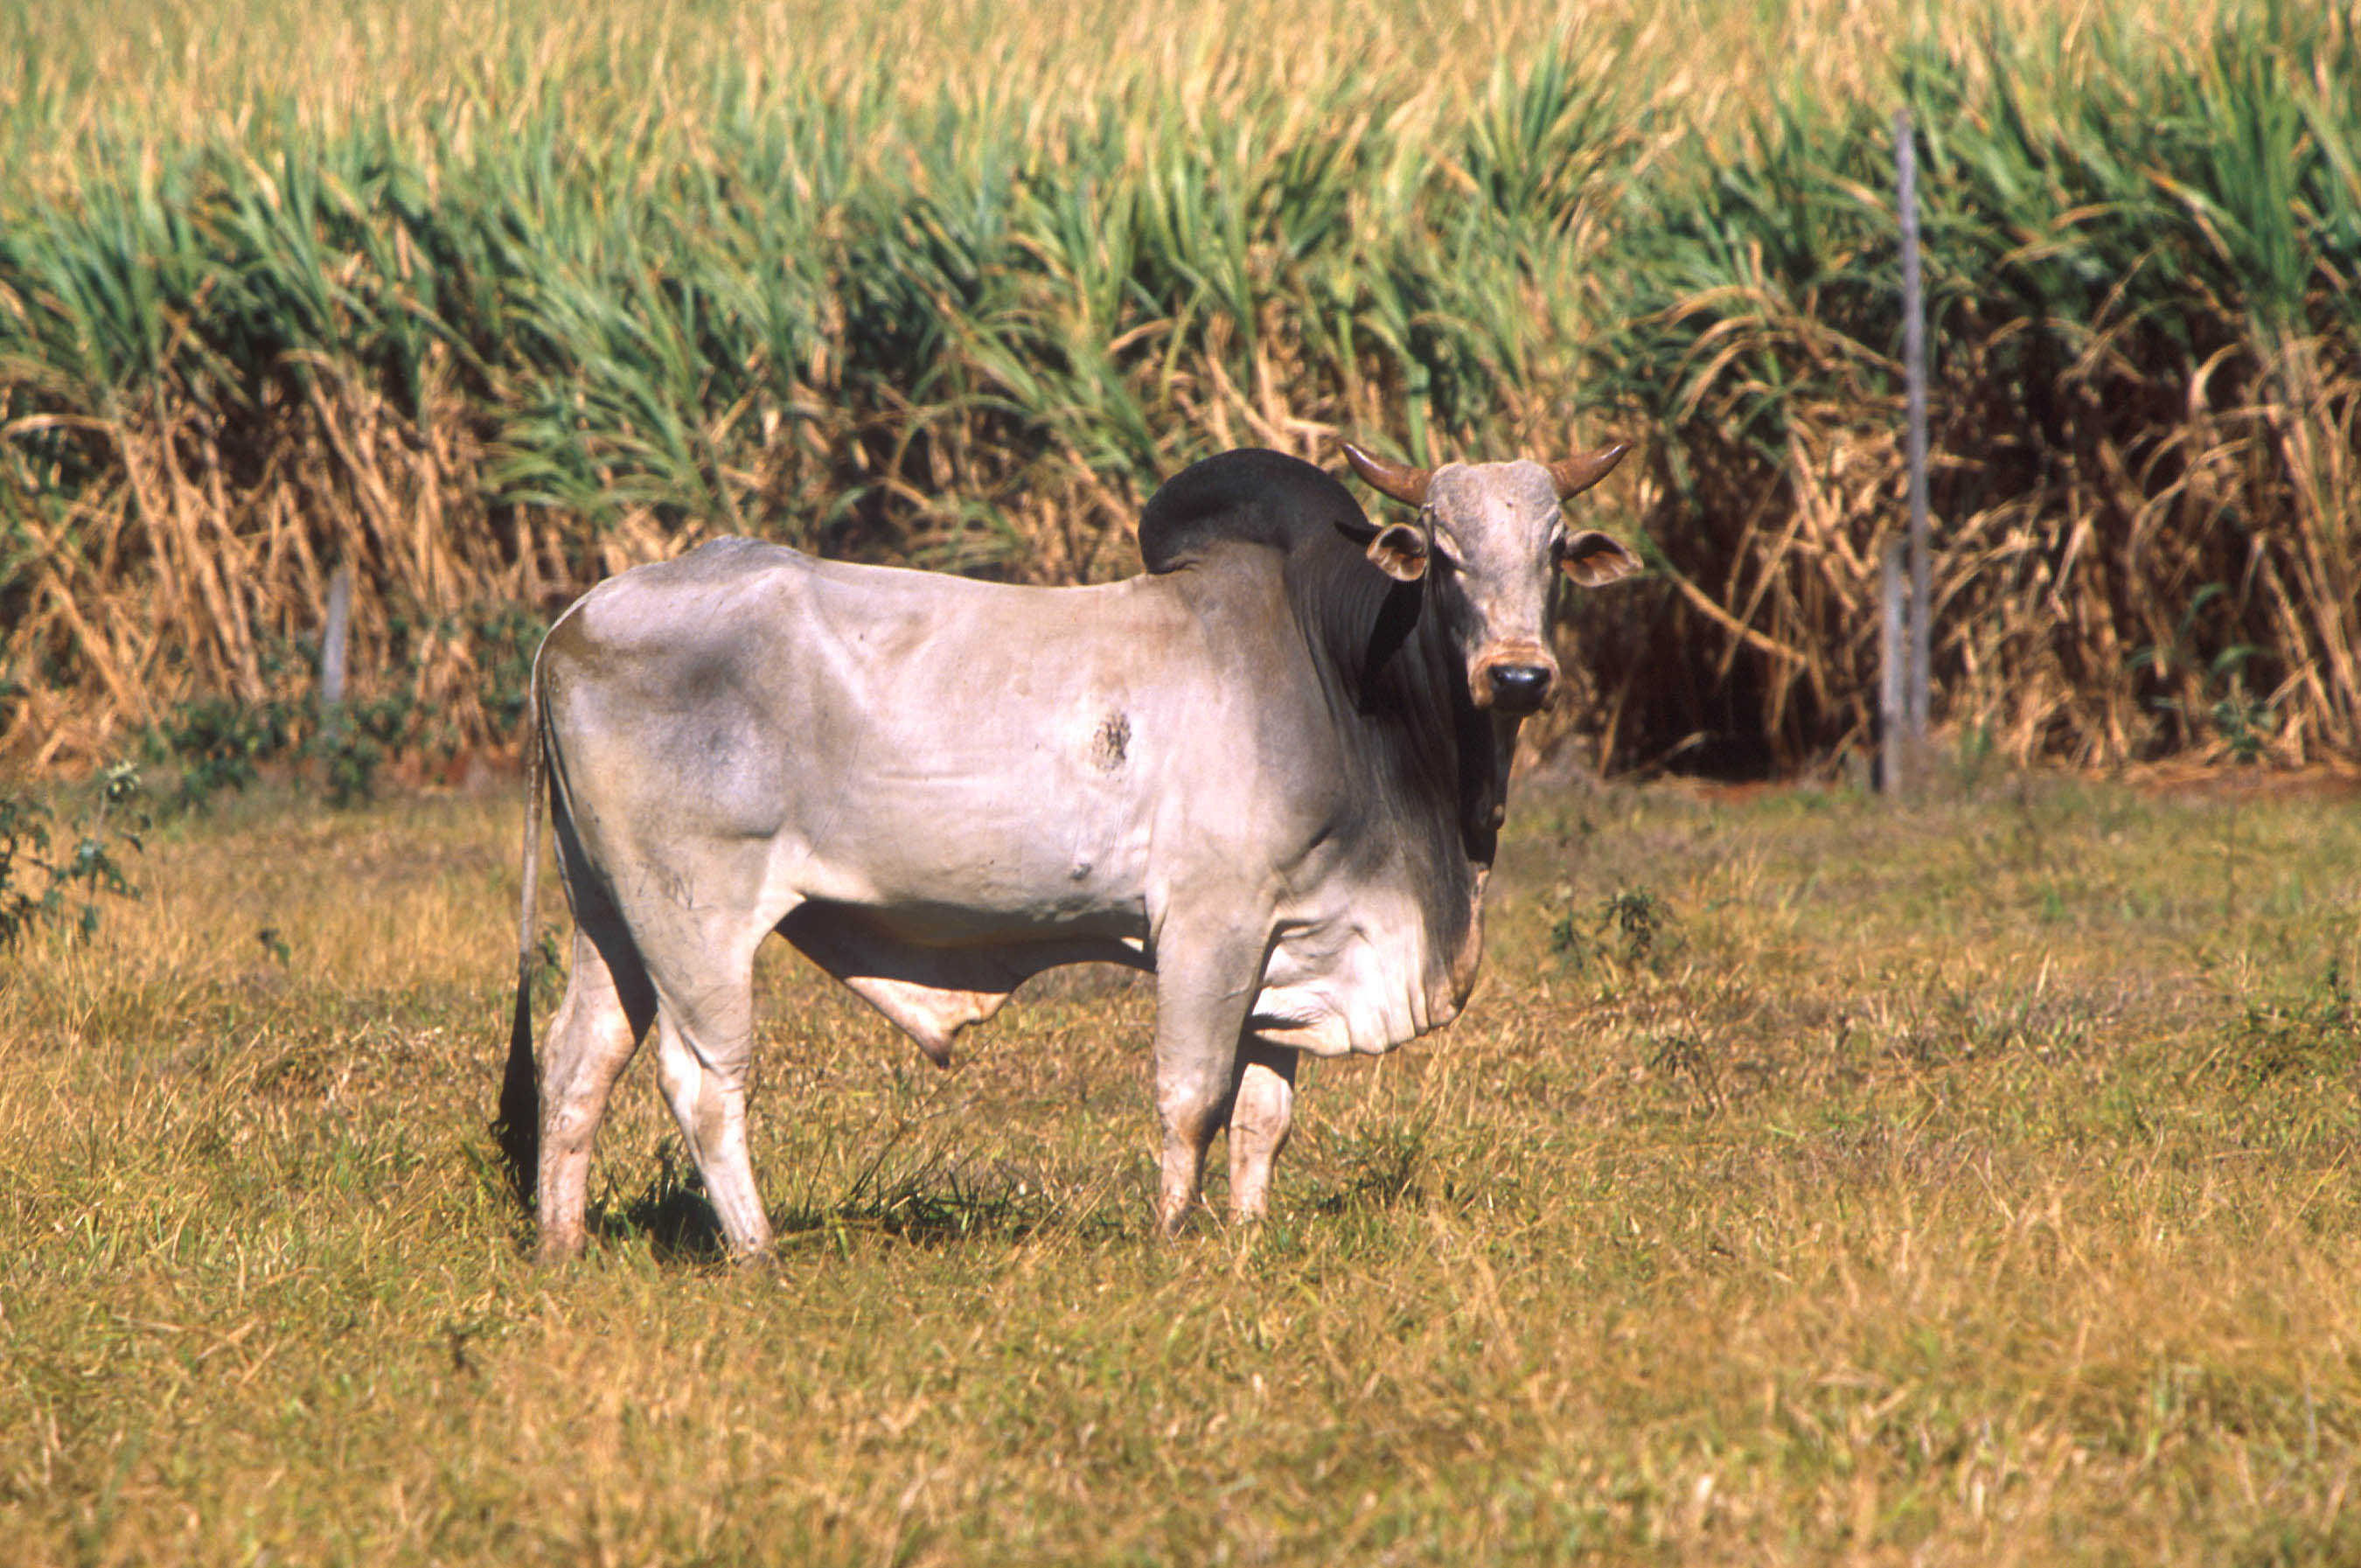 https://upload.wikimedia.org/wikipedia/commons/1/11/Bos_taurus_indicus.jpg